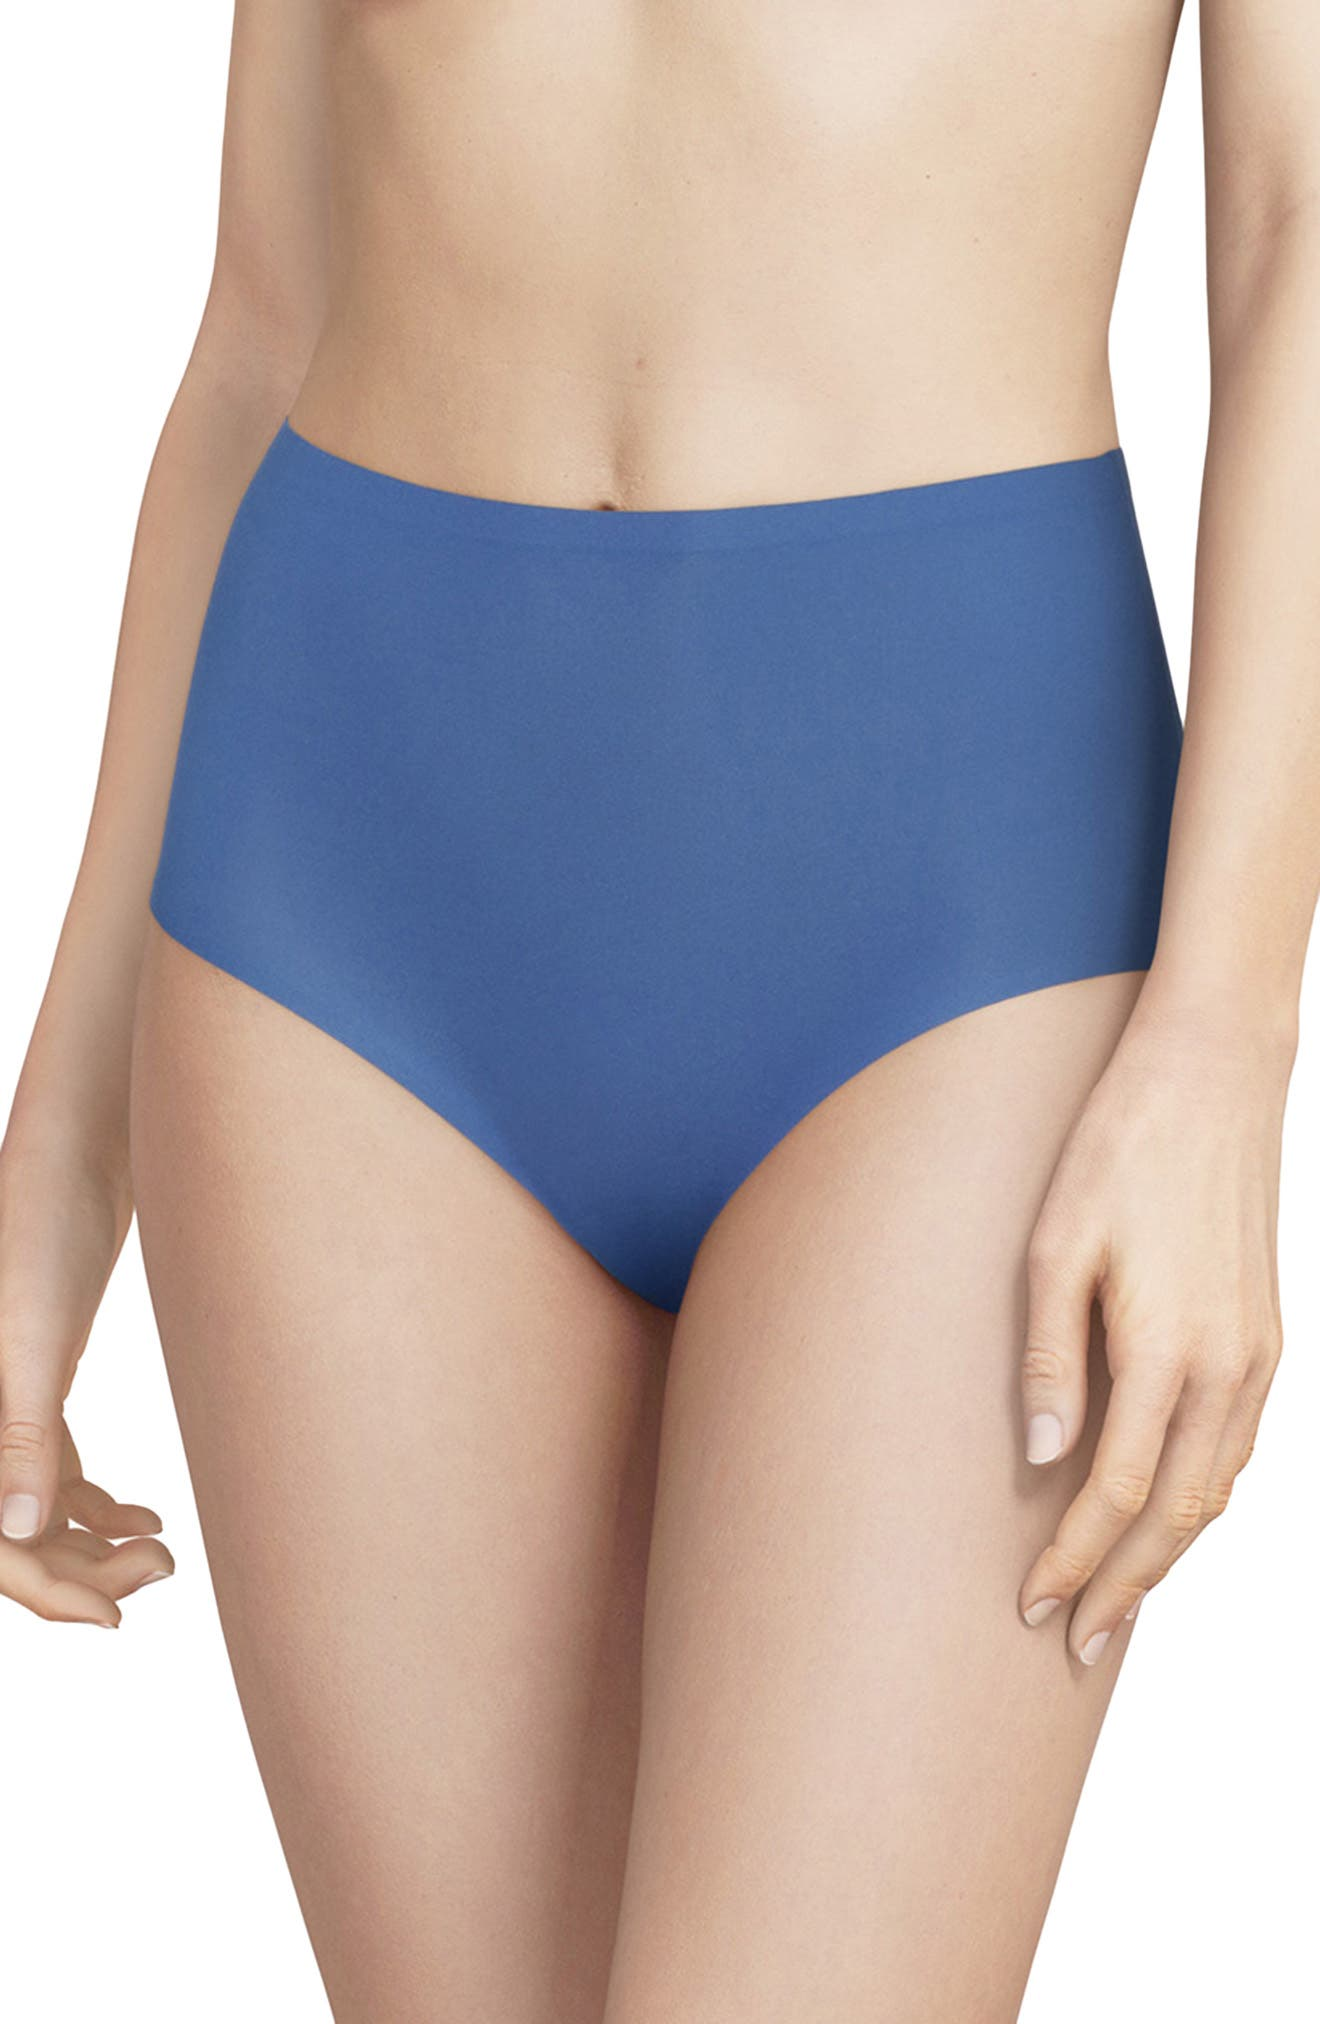 Get a line-free look without sacrificing comfort in these high-waist briefs made from soft, comfy fabric with bonded edges that disappear beneath clothing. Style Name: Chantelle Lingerie Soft Stretch High Waist Briefs (Buy More & Save). Style Number: 5211594. Available in stores.